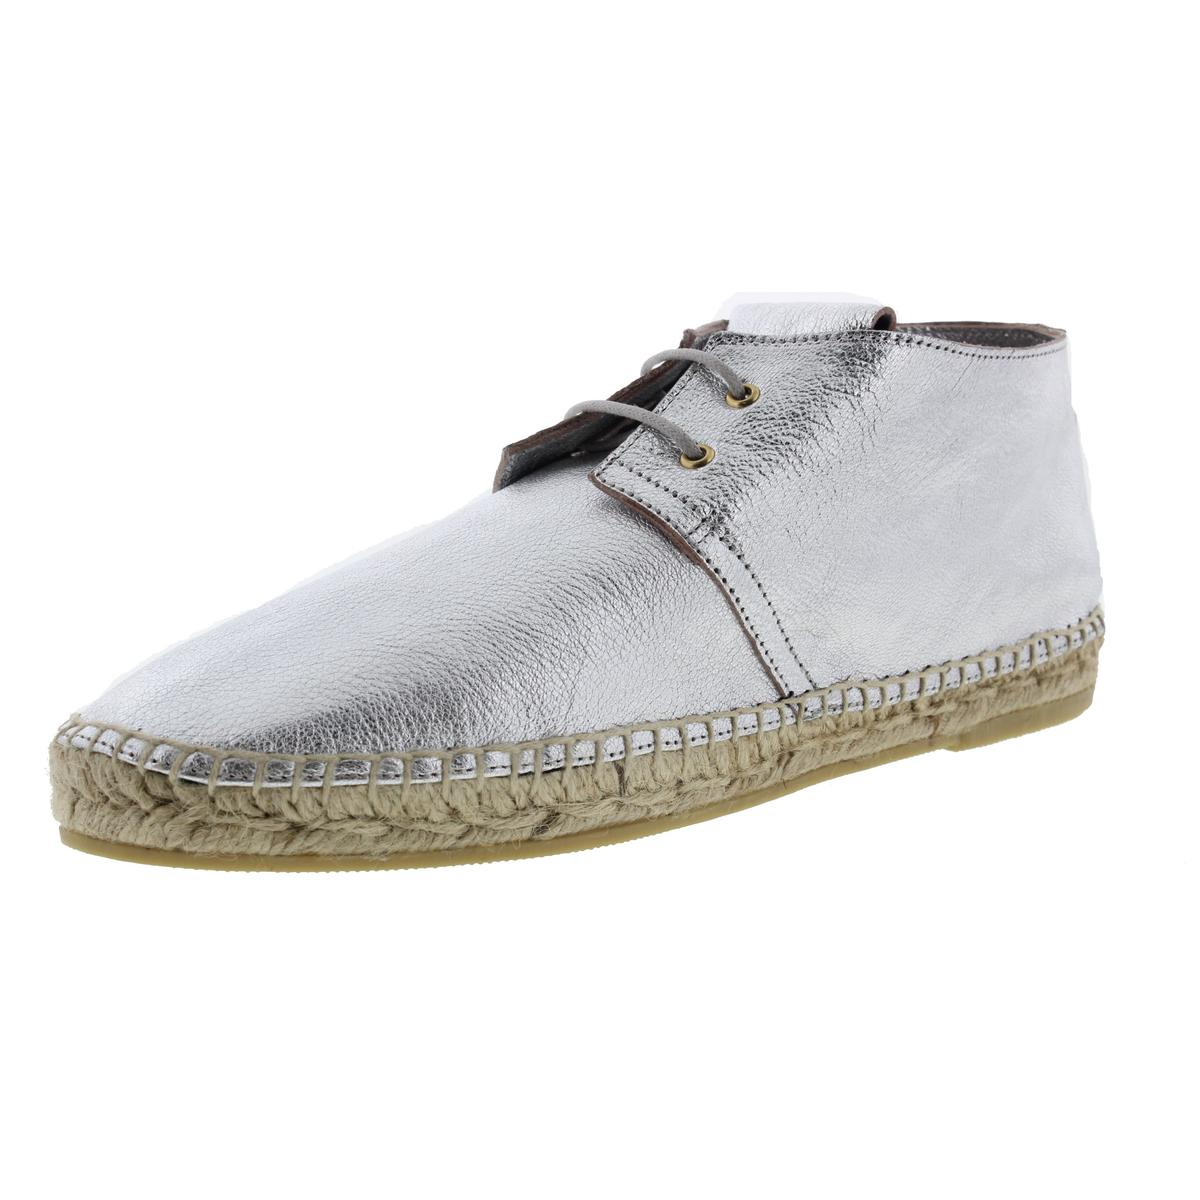 Robert Clergerie Womens Eloise Leather Distressed Espadrilles